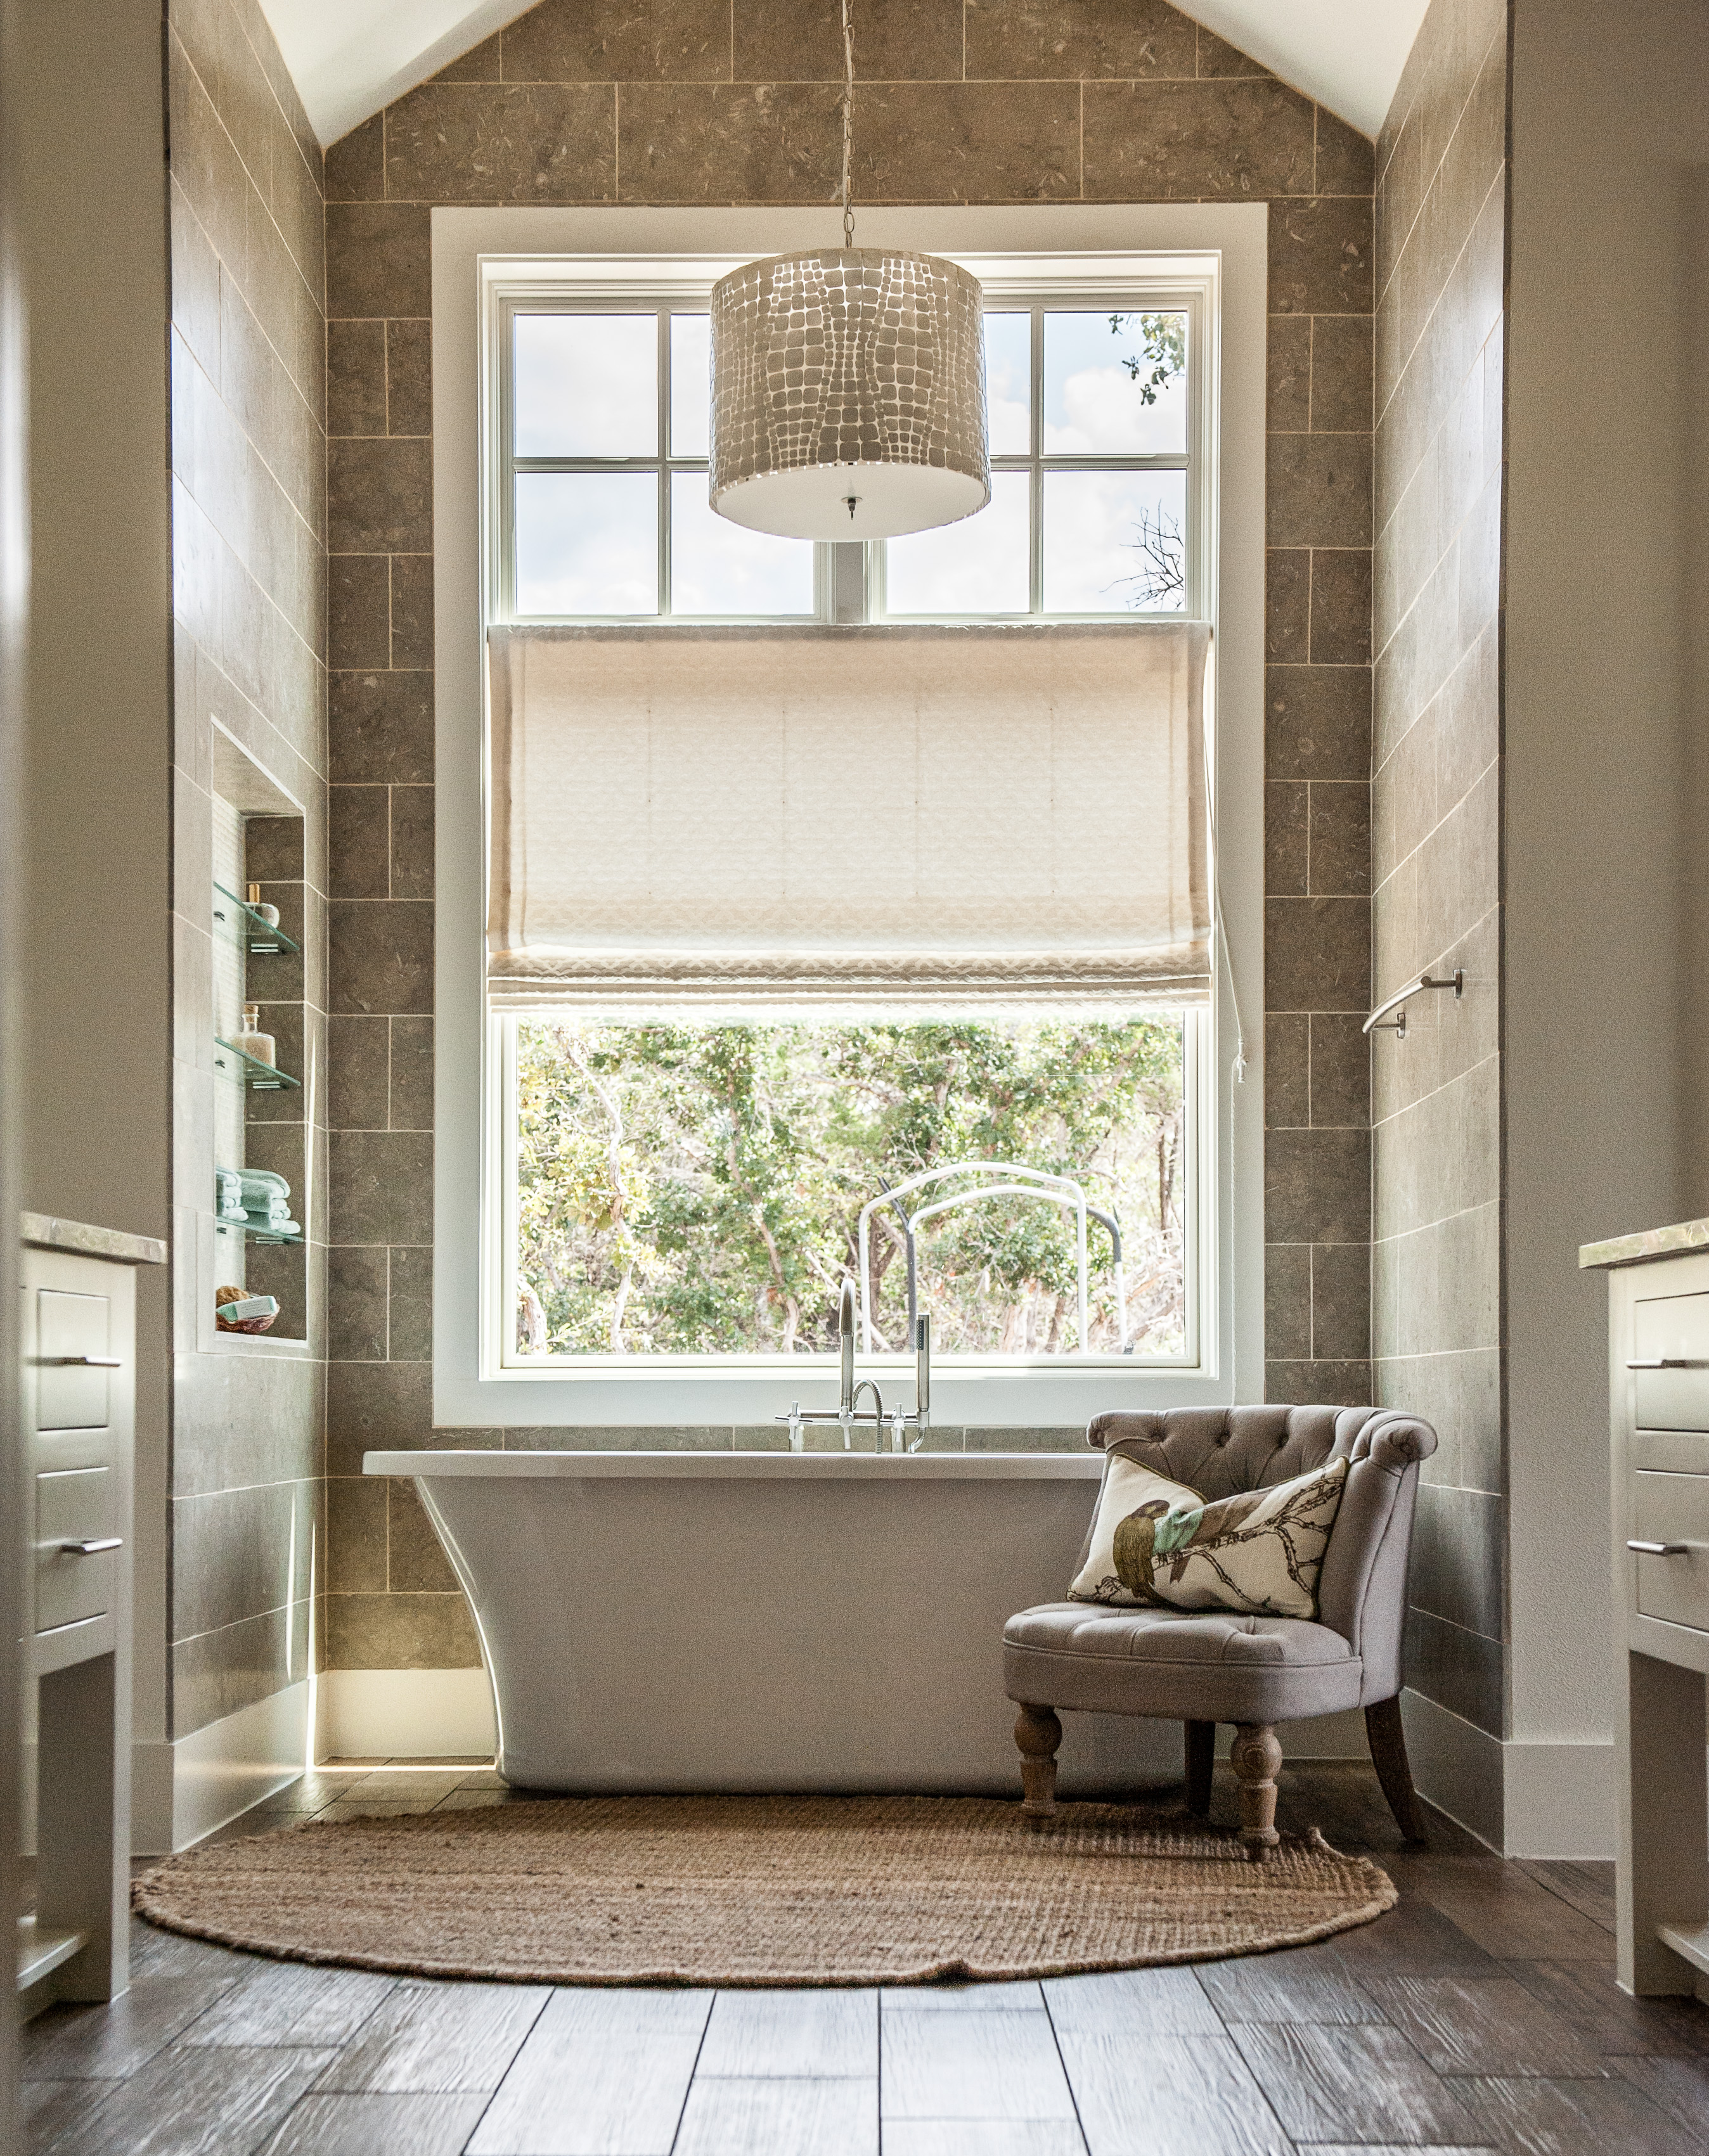 Home Design With Polished Concrete Floors in addition Interior Design With High Ceilings furthermore Paint Colors Top Interior Designers furthermore Property 38277309 besides Modern Farmhouse Blue. on exposed timbre kitchen